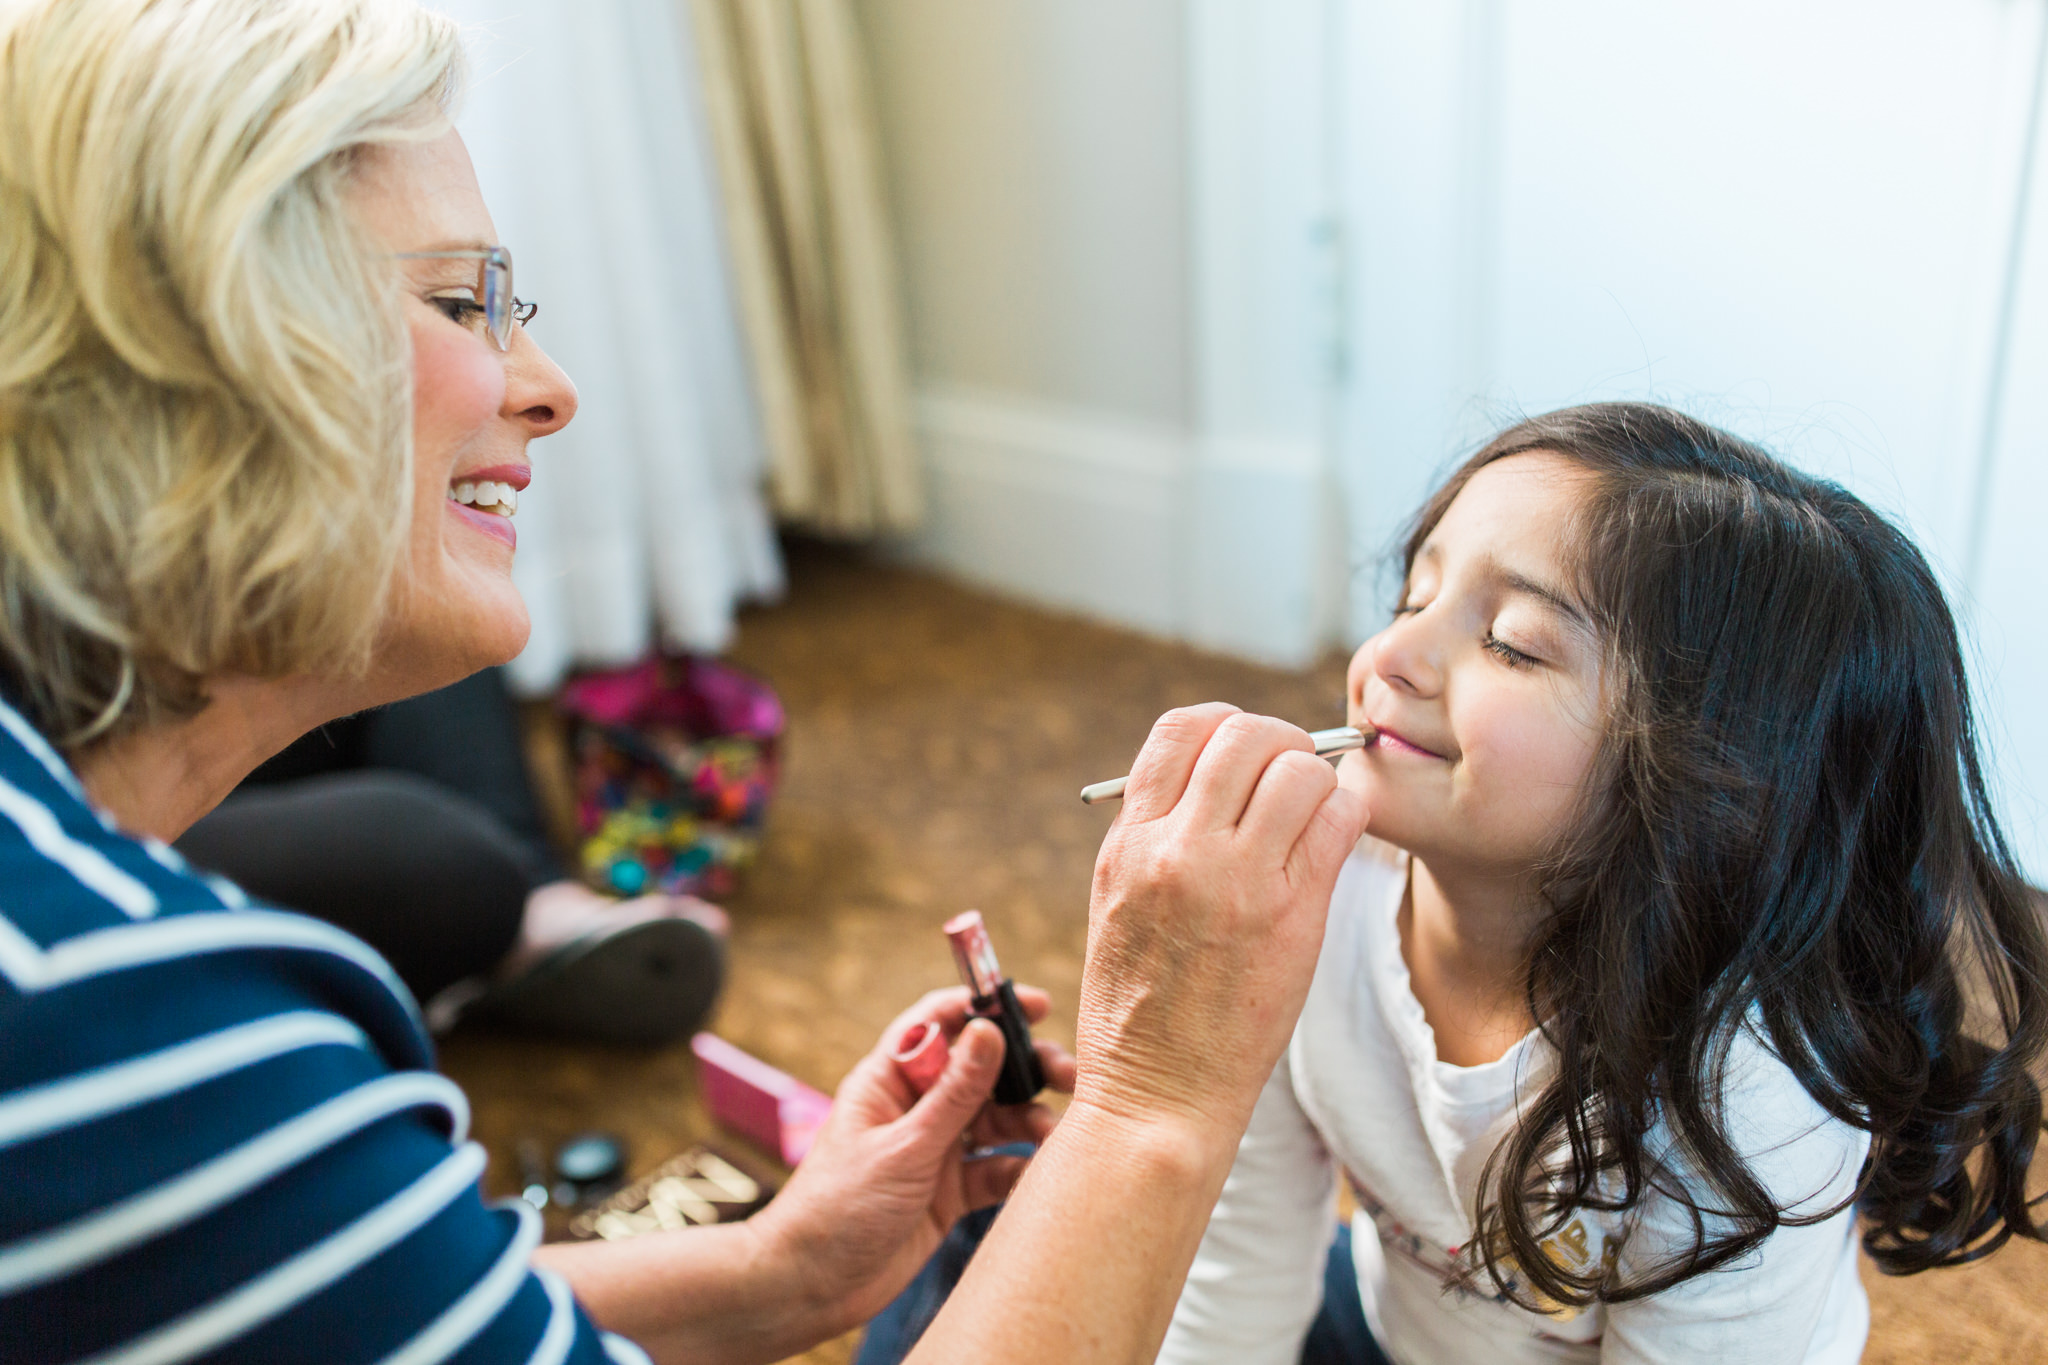 mother of the bride putting lipstick on her youngest daughter before the wedding